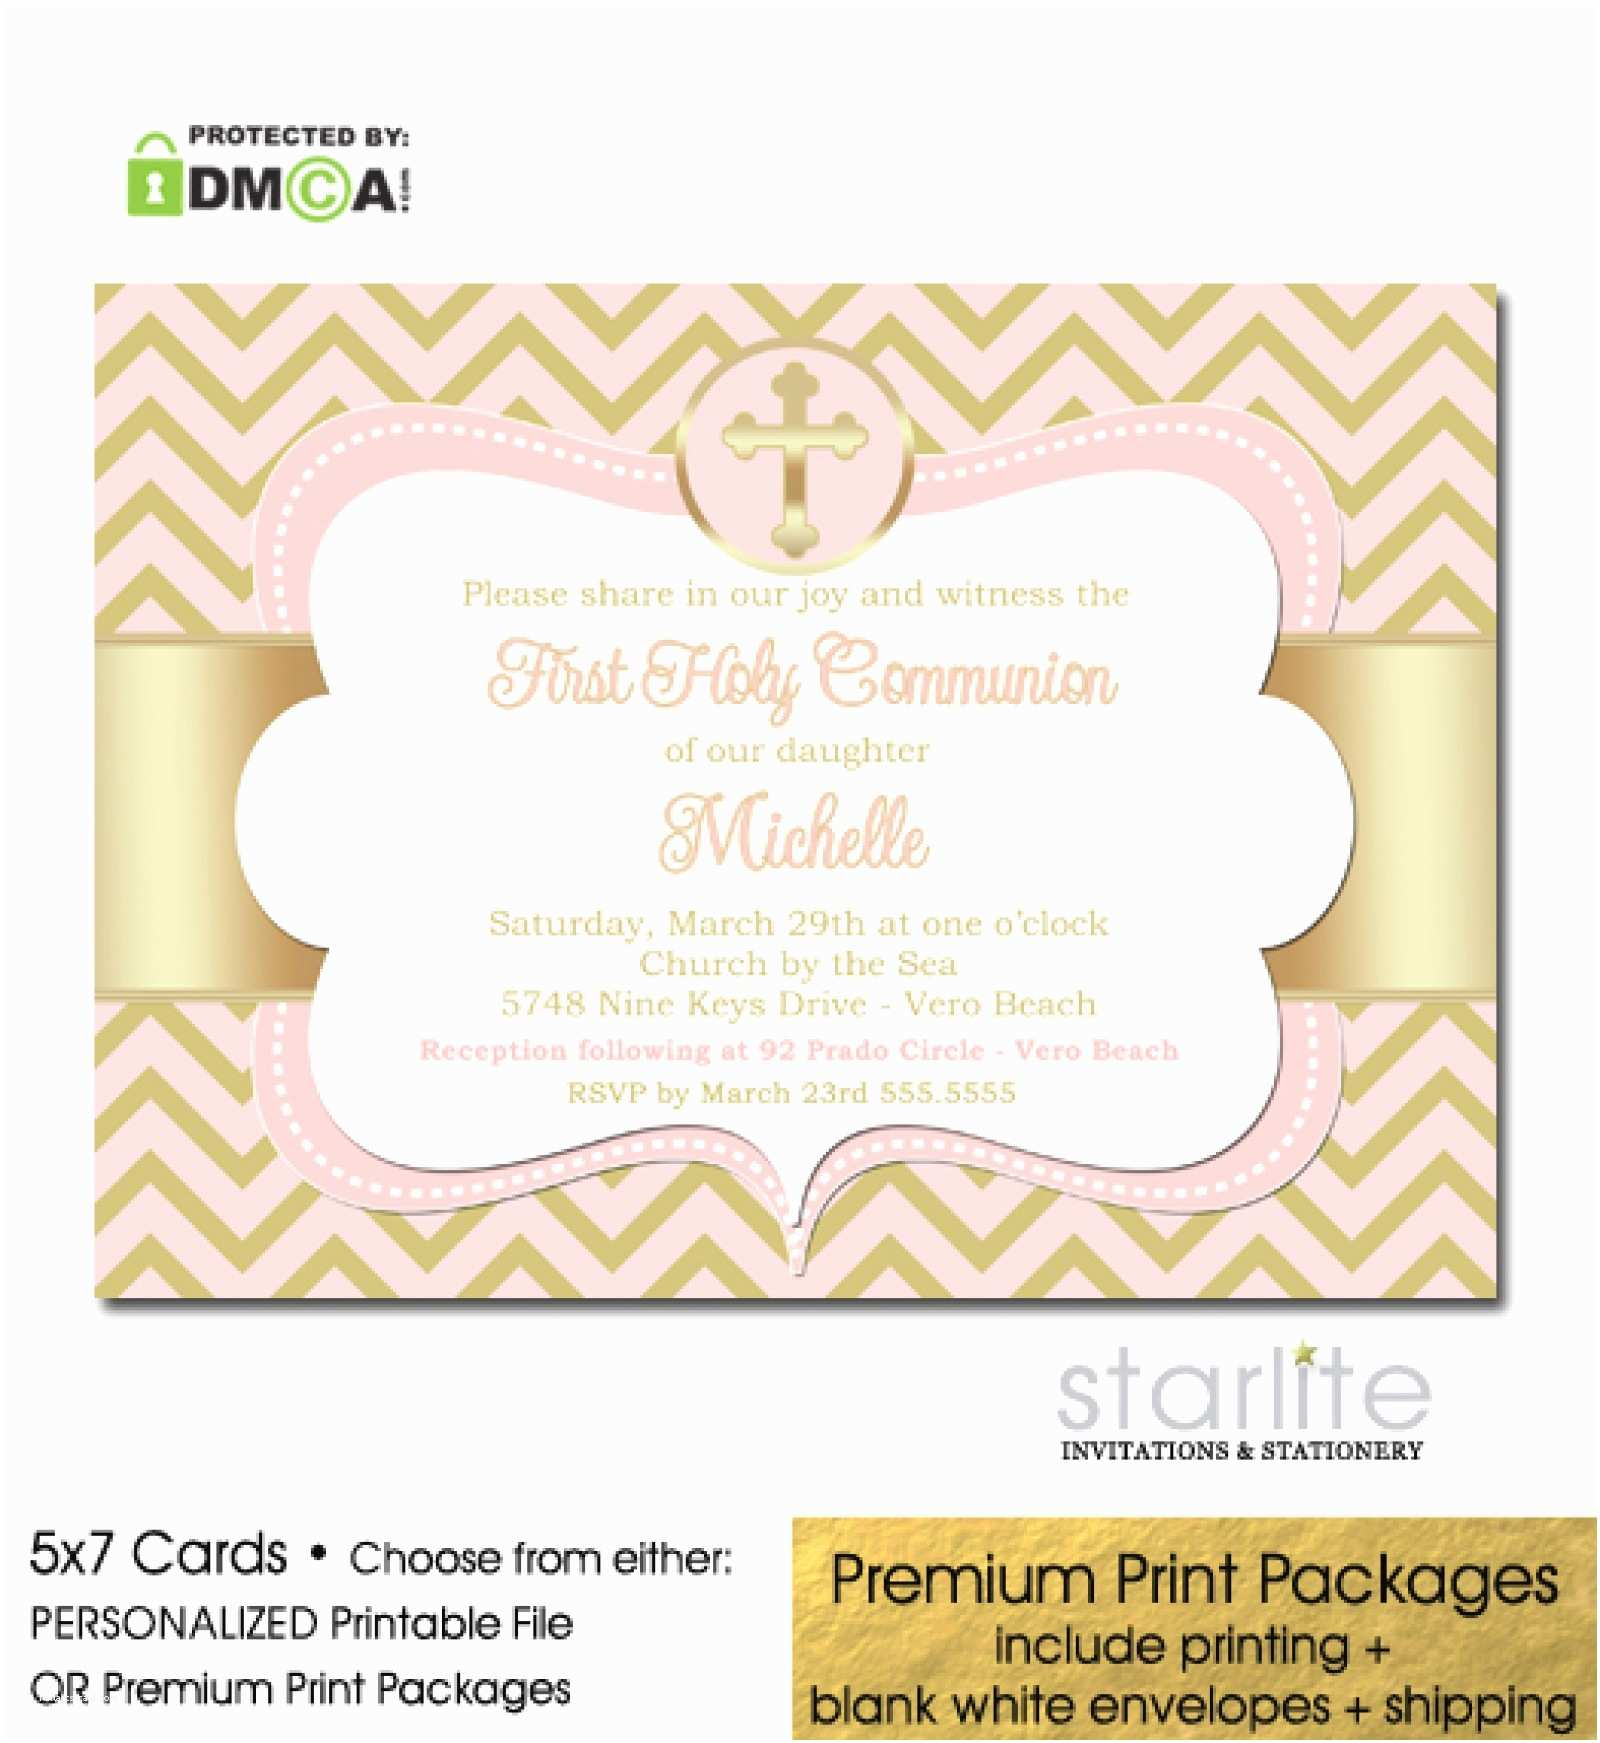 First Communion Invitations for Girls Pink and Gold Girl First Munion Invitation Chevron